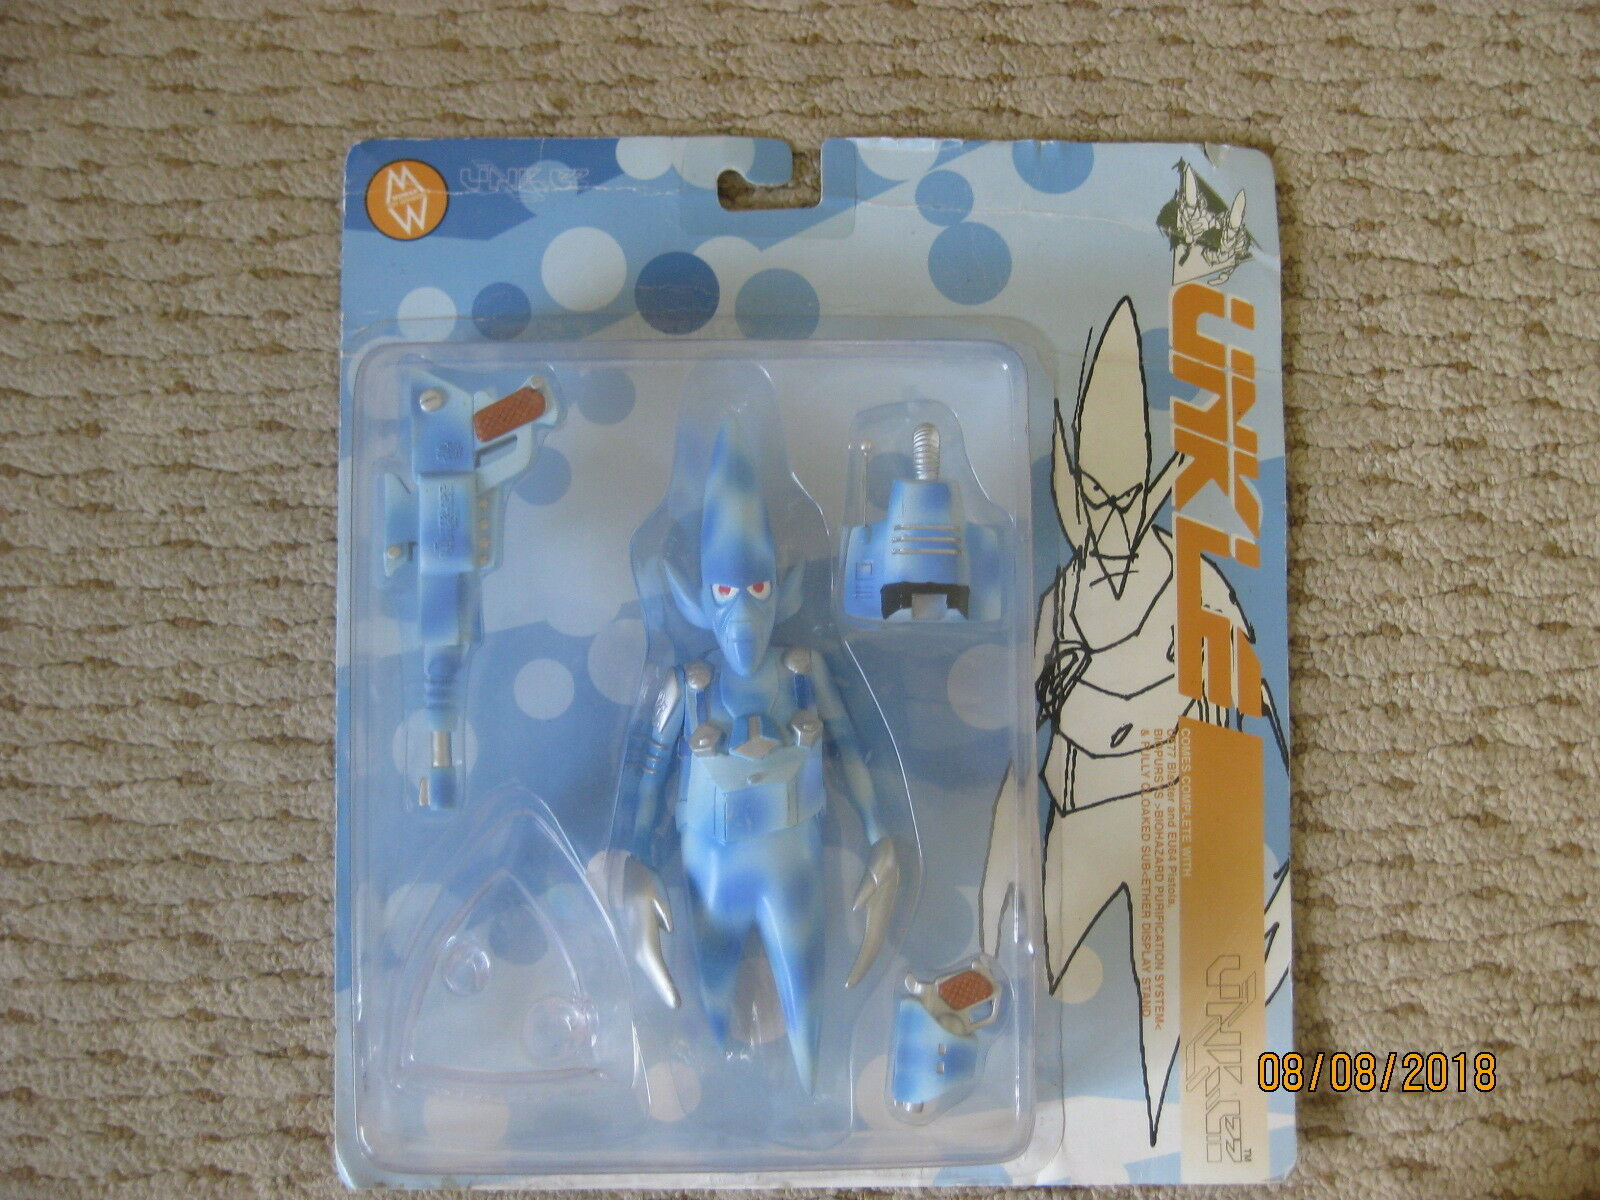 Futura Unkle Action Action Action Figure Mo Wax Pointman 5c5442